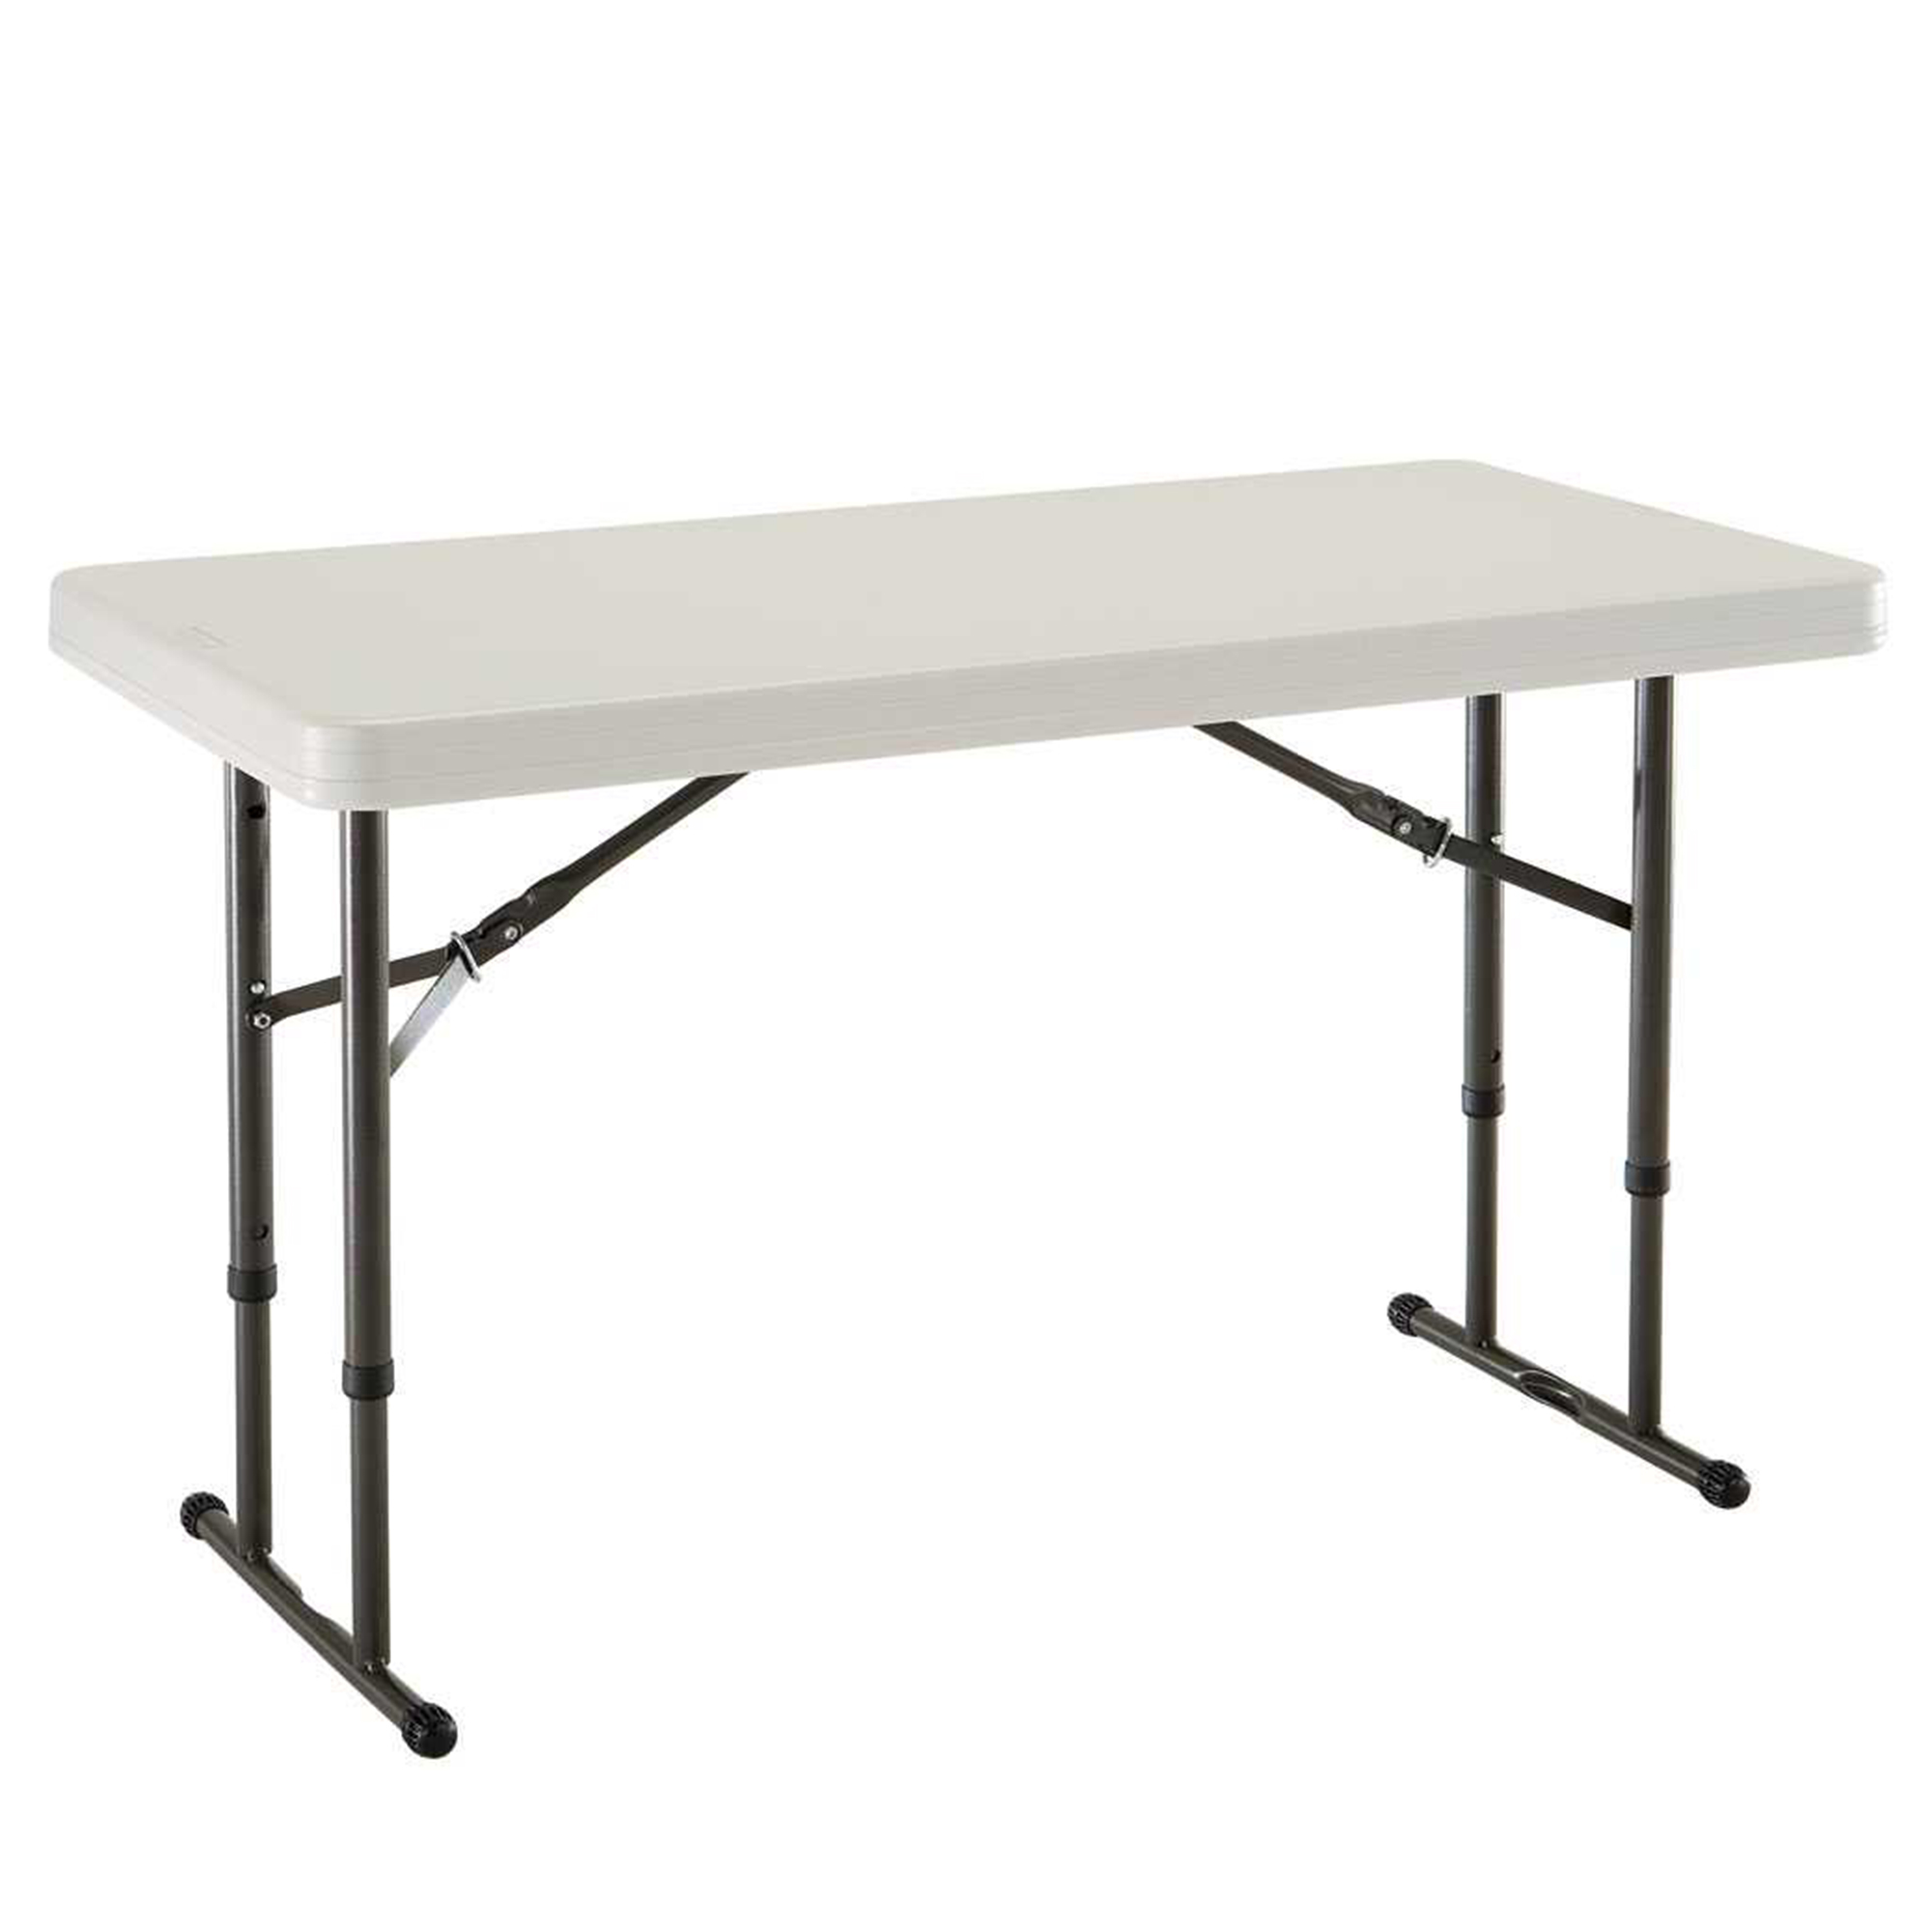 Lifetime 4' Adjustable Folding Table, Almond, 80161 by Lifetime Products